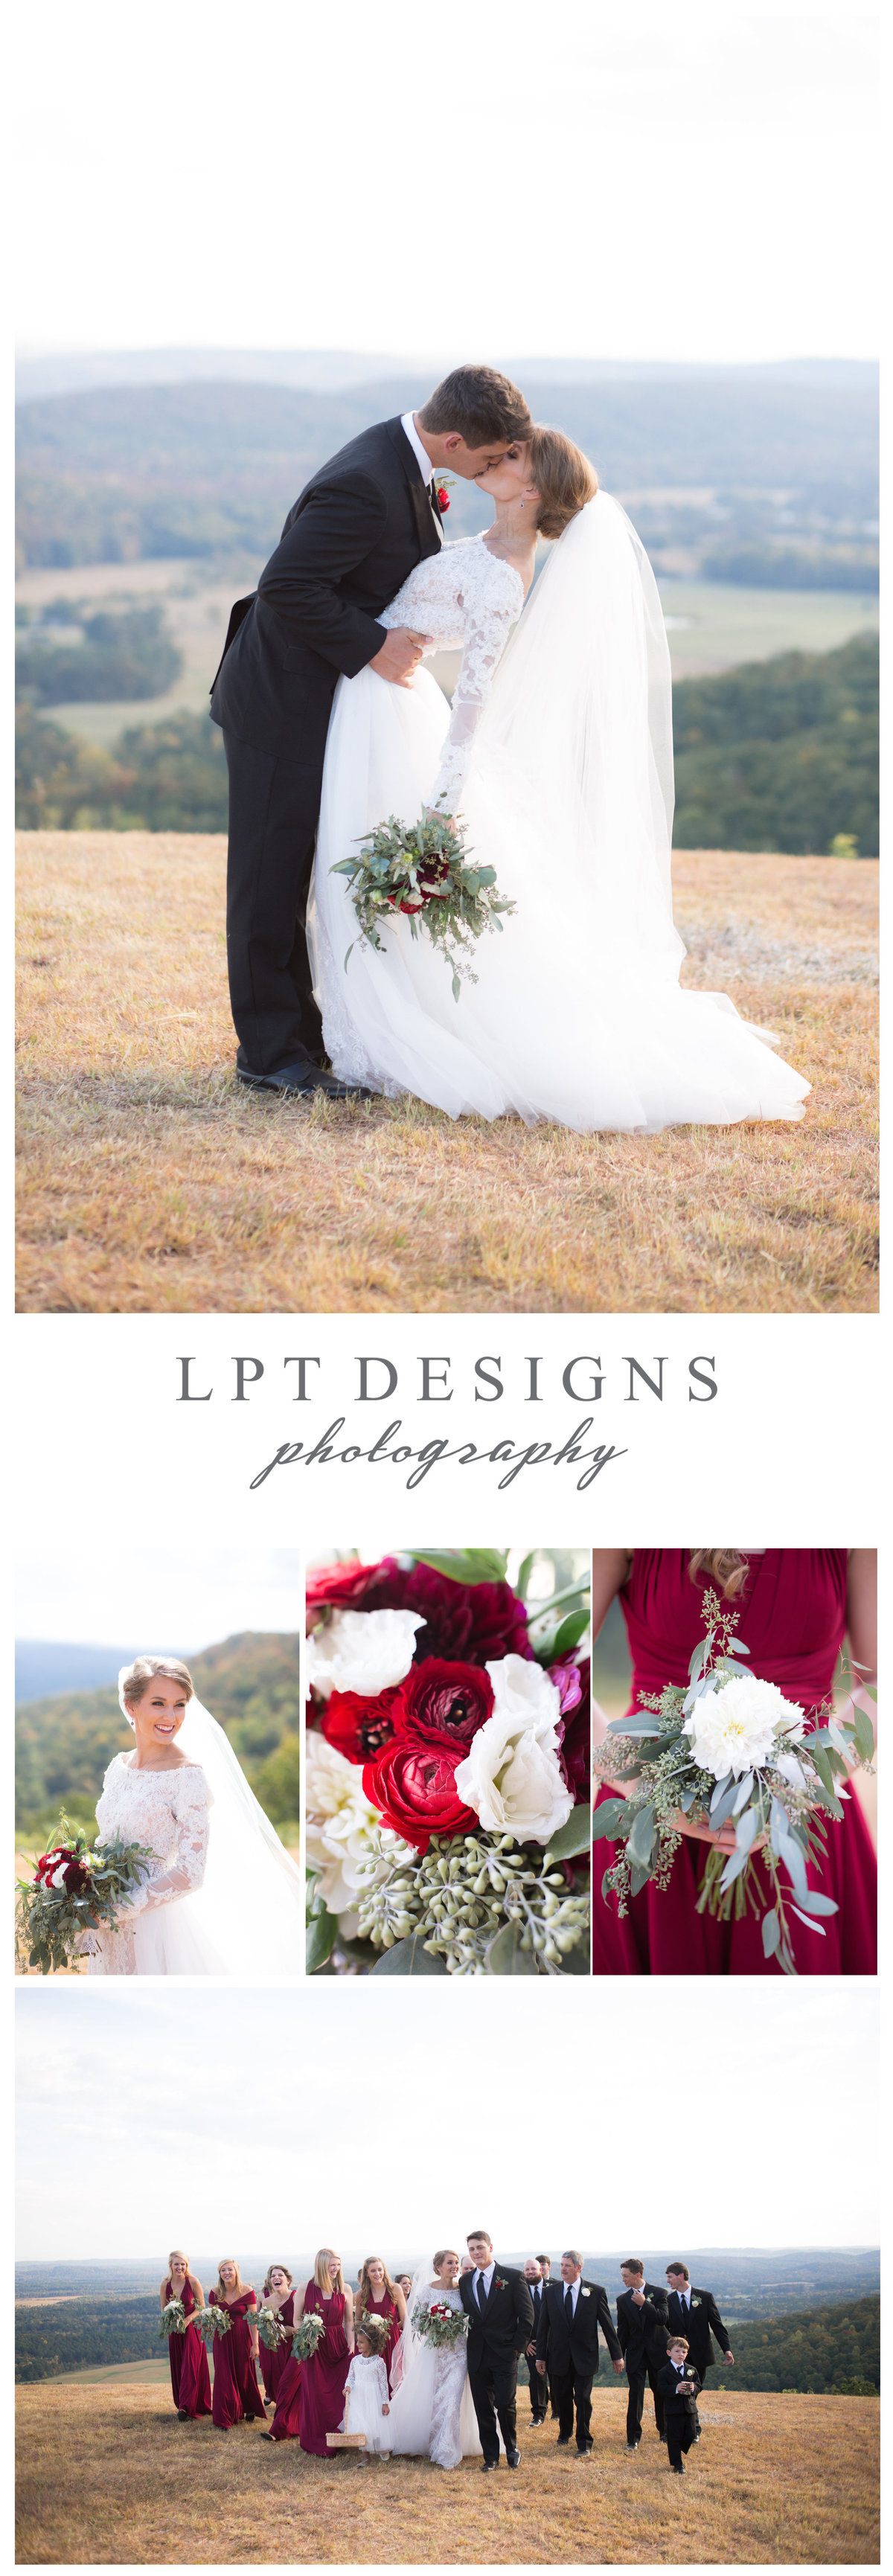 LPT Designs Photography Lydia Thrift Gadsden Alabama Boutique Wedding Photographer New Web 14